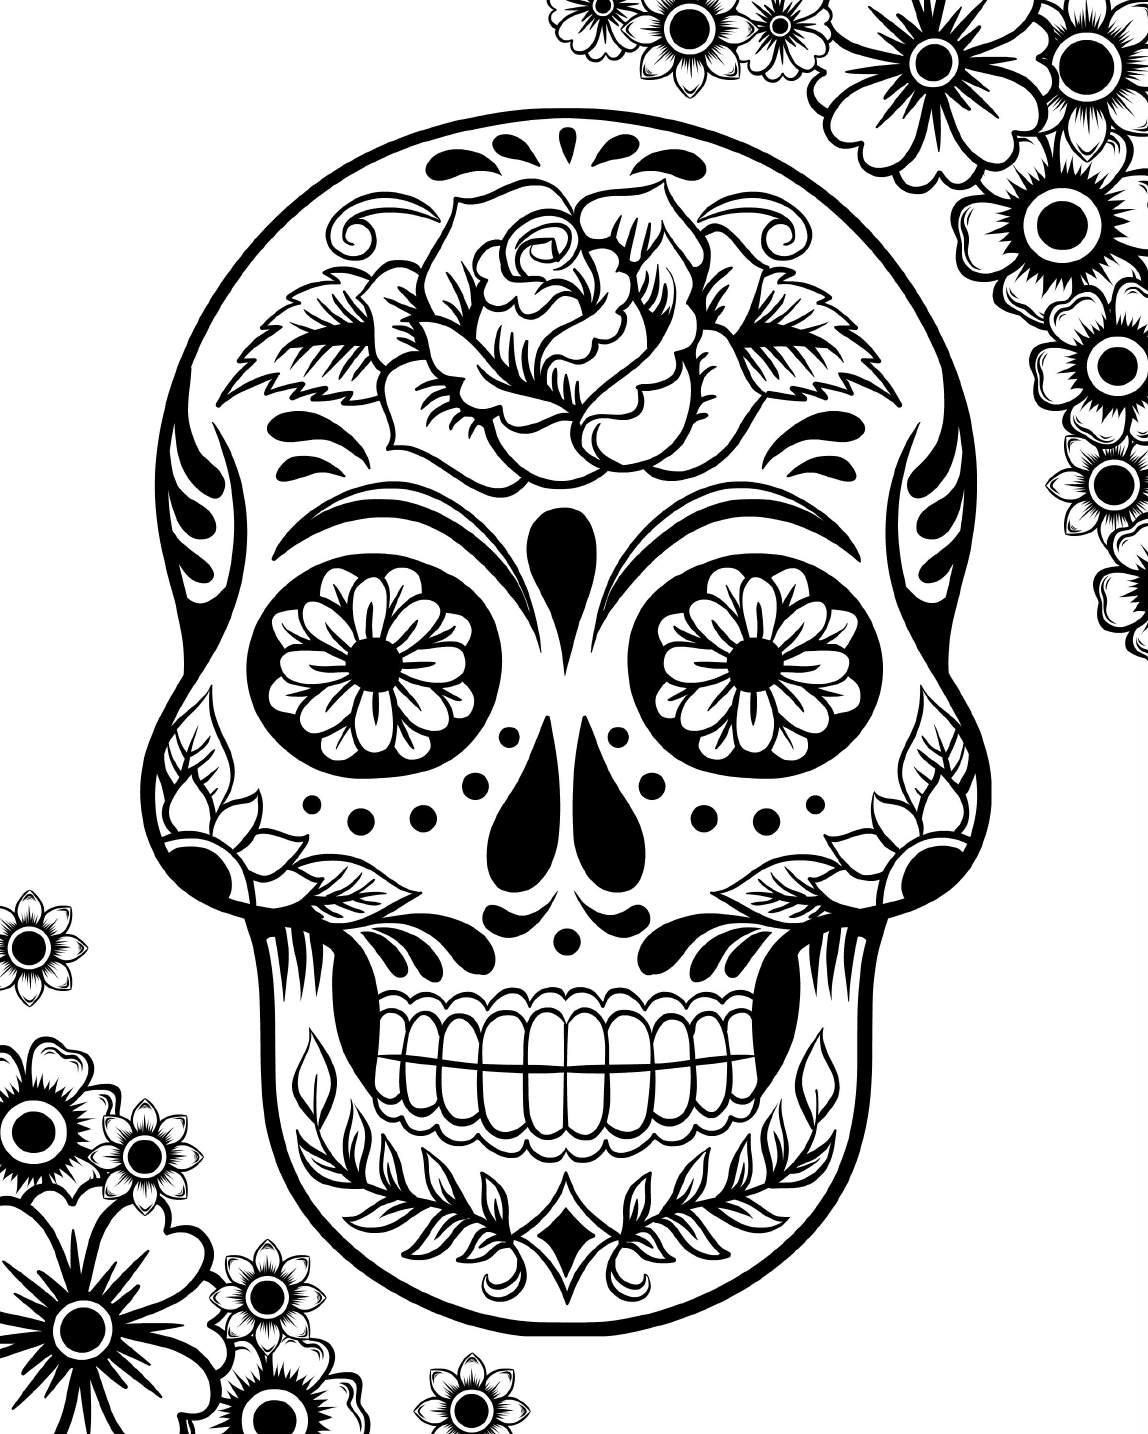 Skull Color Pages Sugar Skull Coloring Pages Best Coloring Pages For Kids